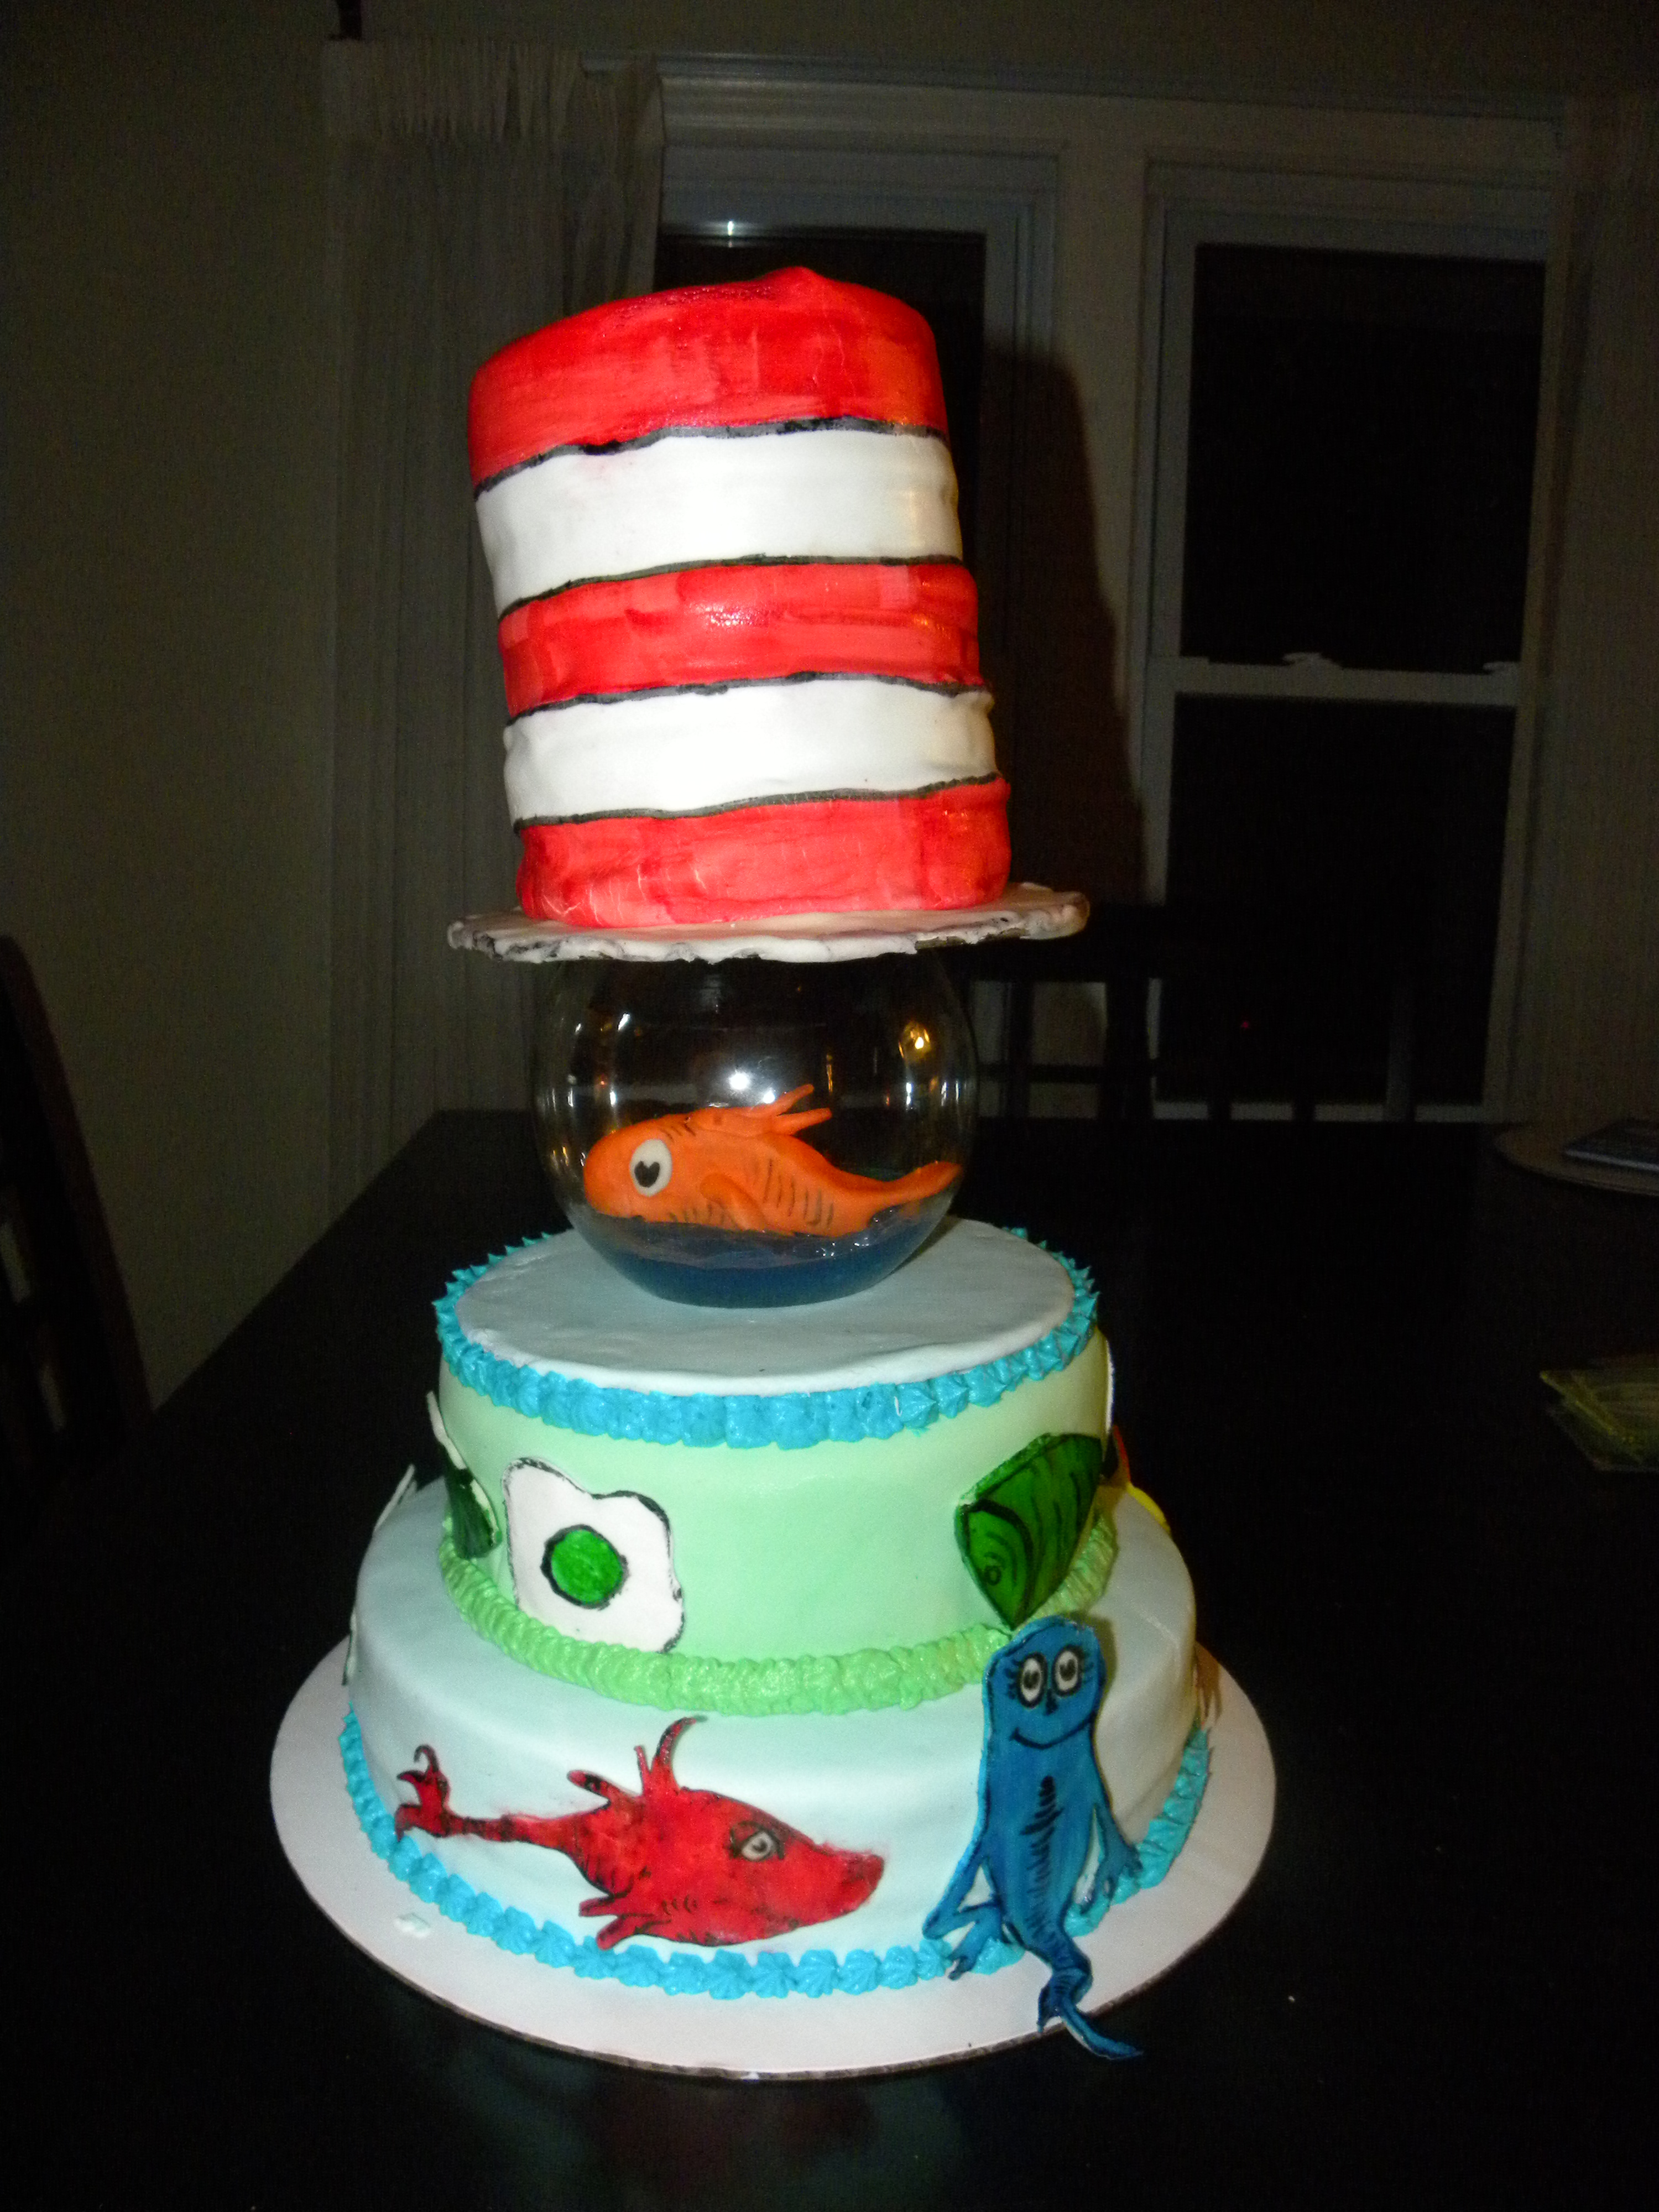 Can I Make A Dr Seuss Cake Cake Is A Good Thing